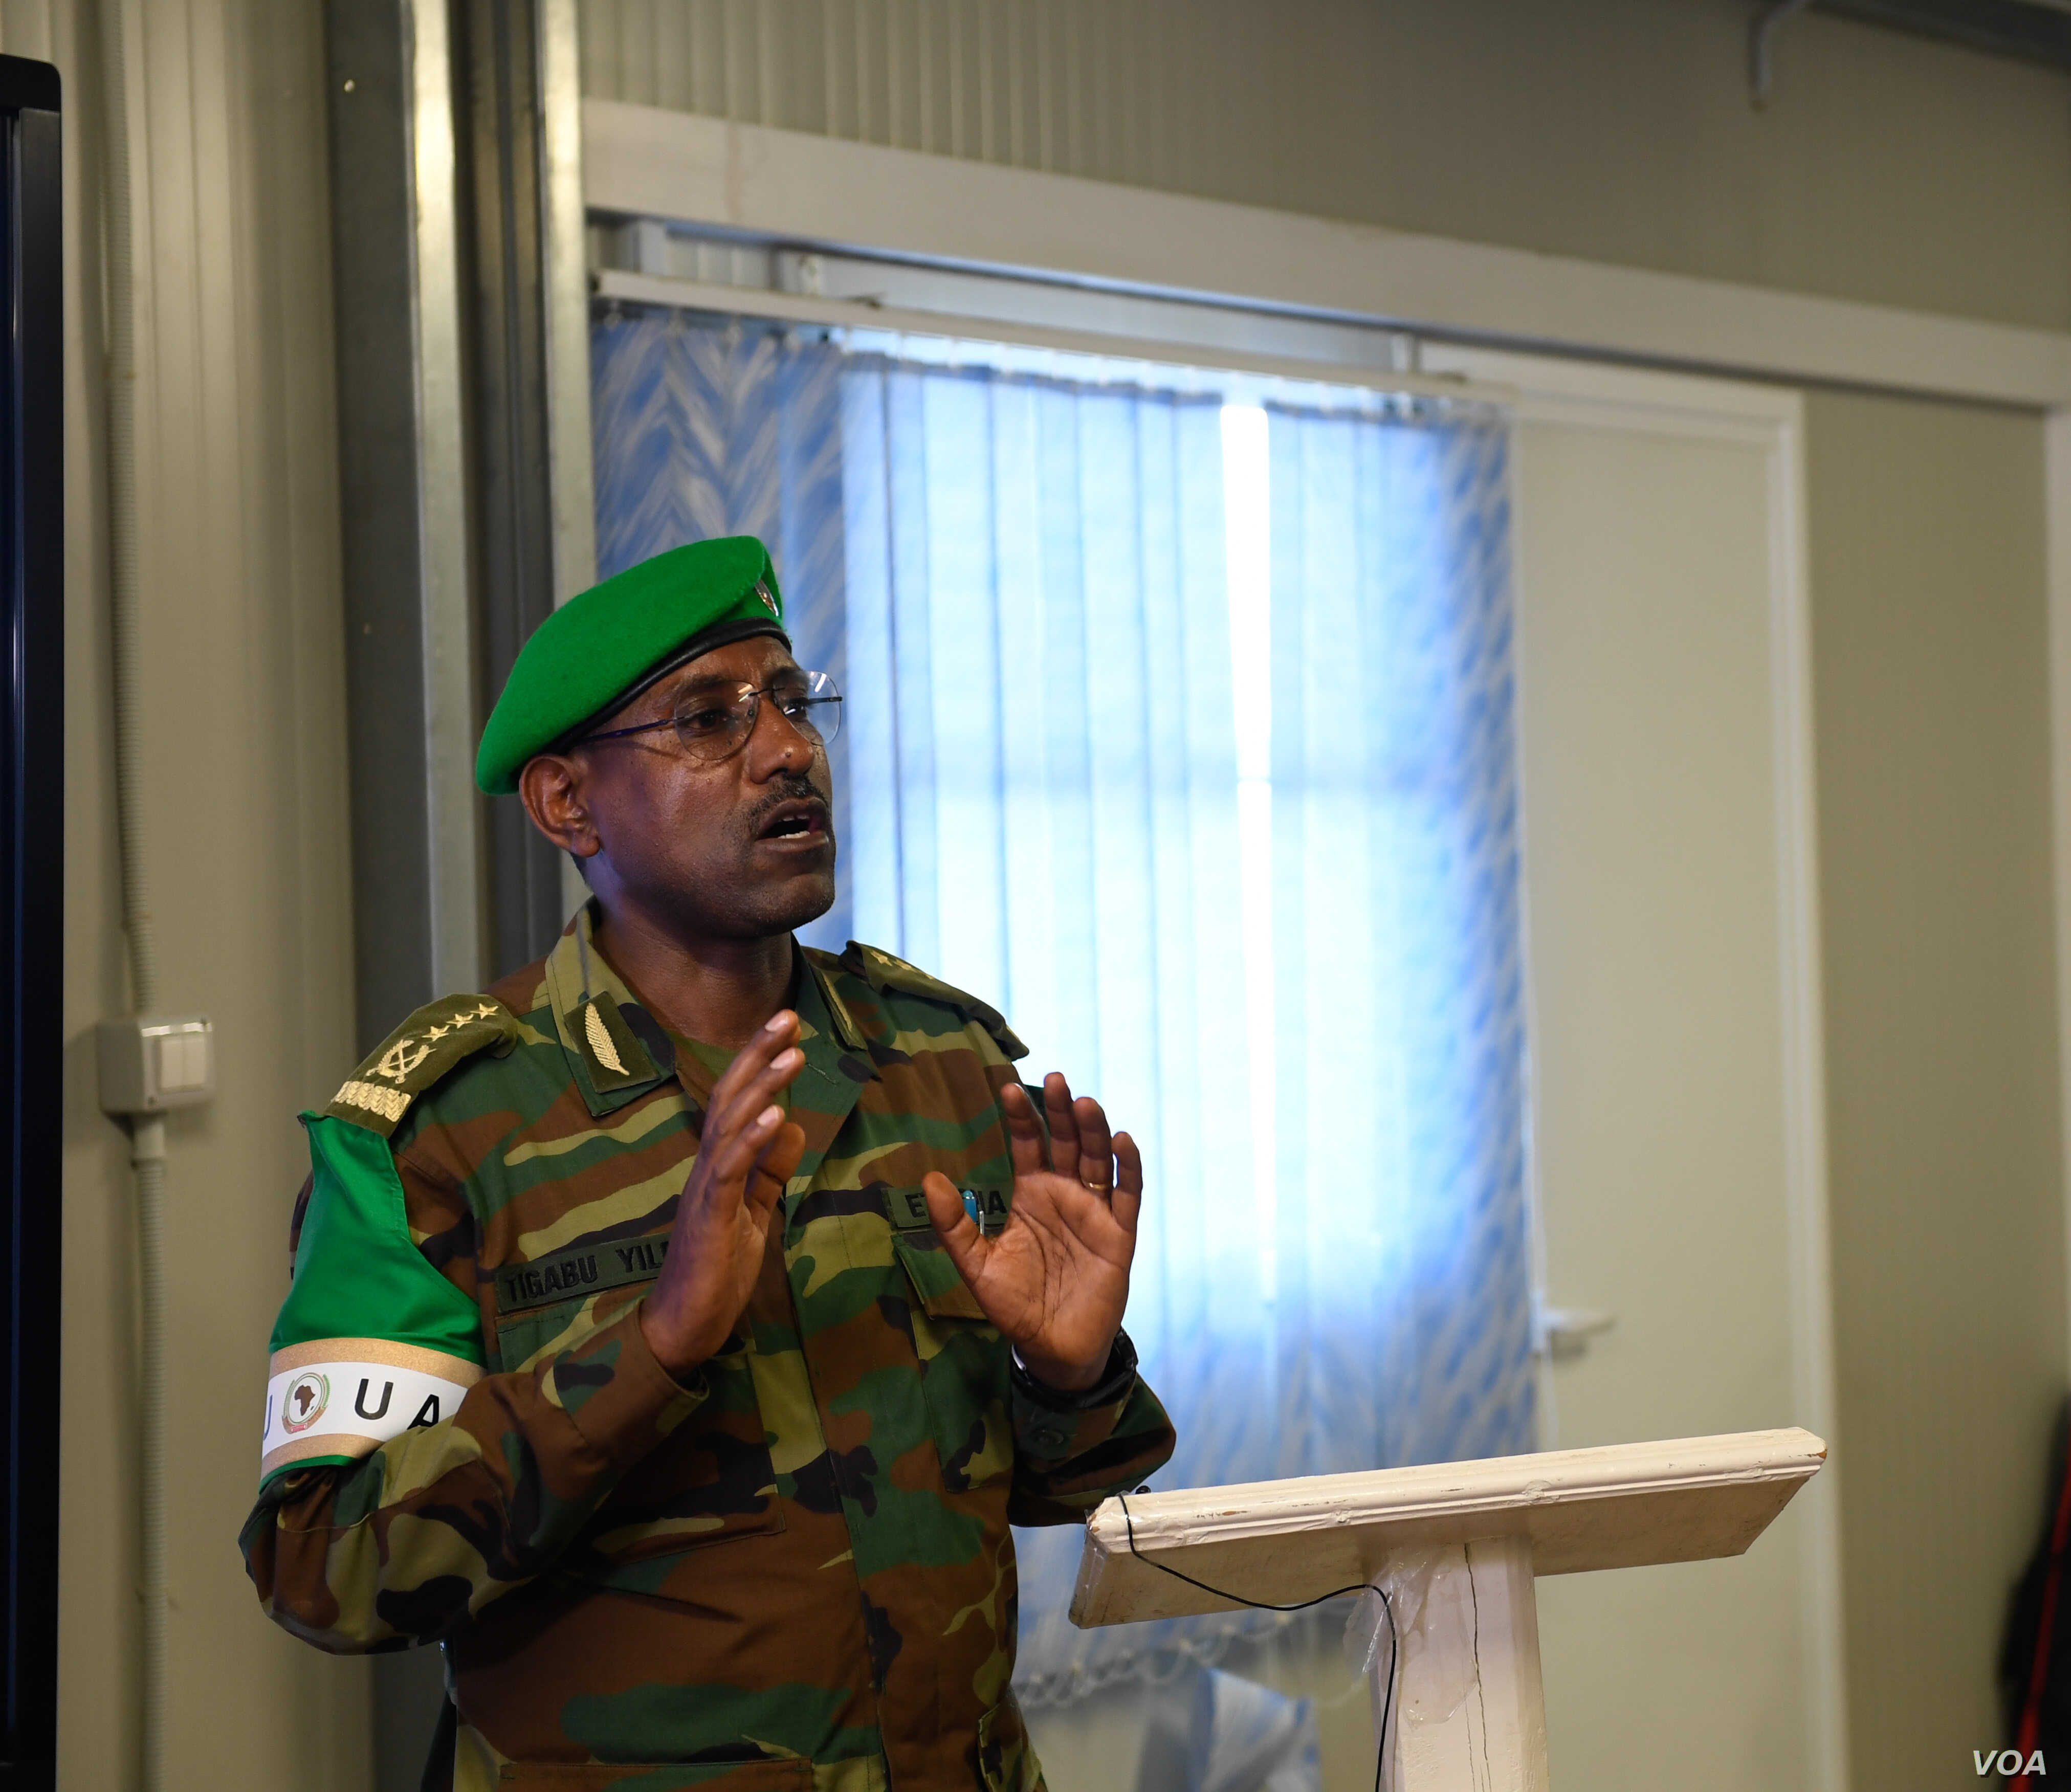 Lt. Gen. Tigabu Yilma Wondimhunegn, the force commander of the African Union Mission in Somalia (AMISOM), speaks at the closing session of the AMISOM Sector Commanders Conference, which discussed the new concept of operations in Mogadishu, Somalia, F...